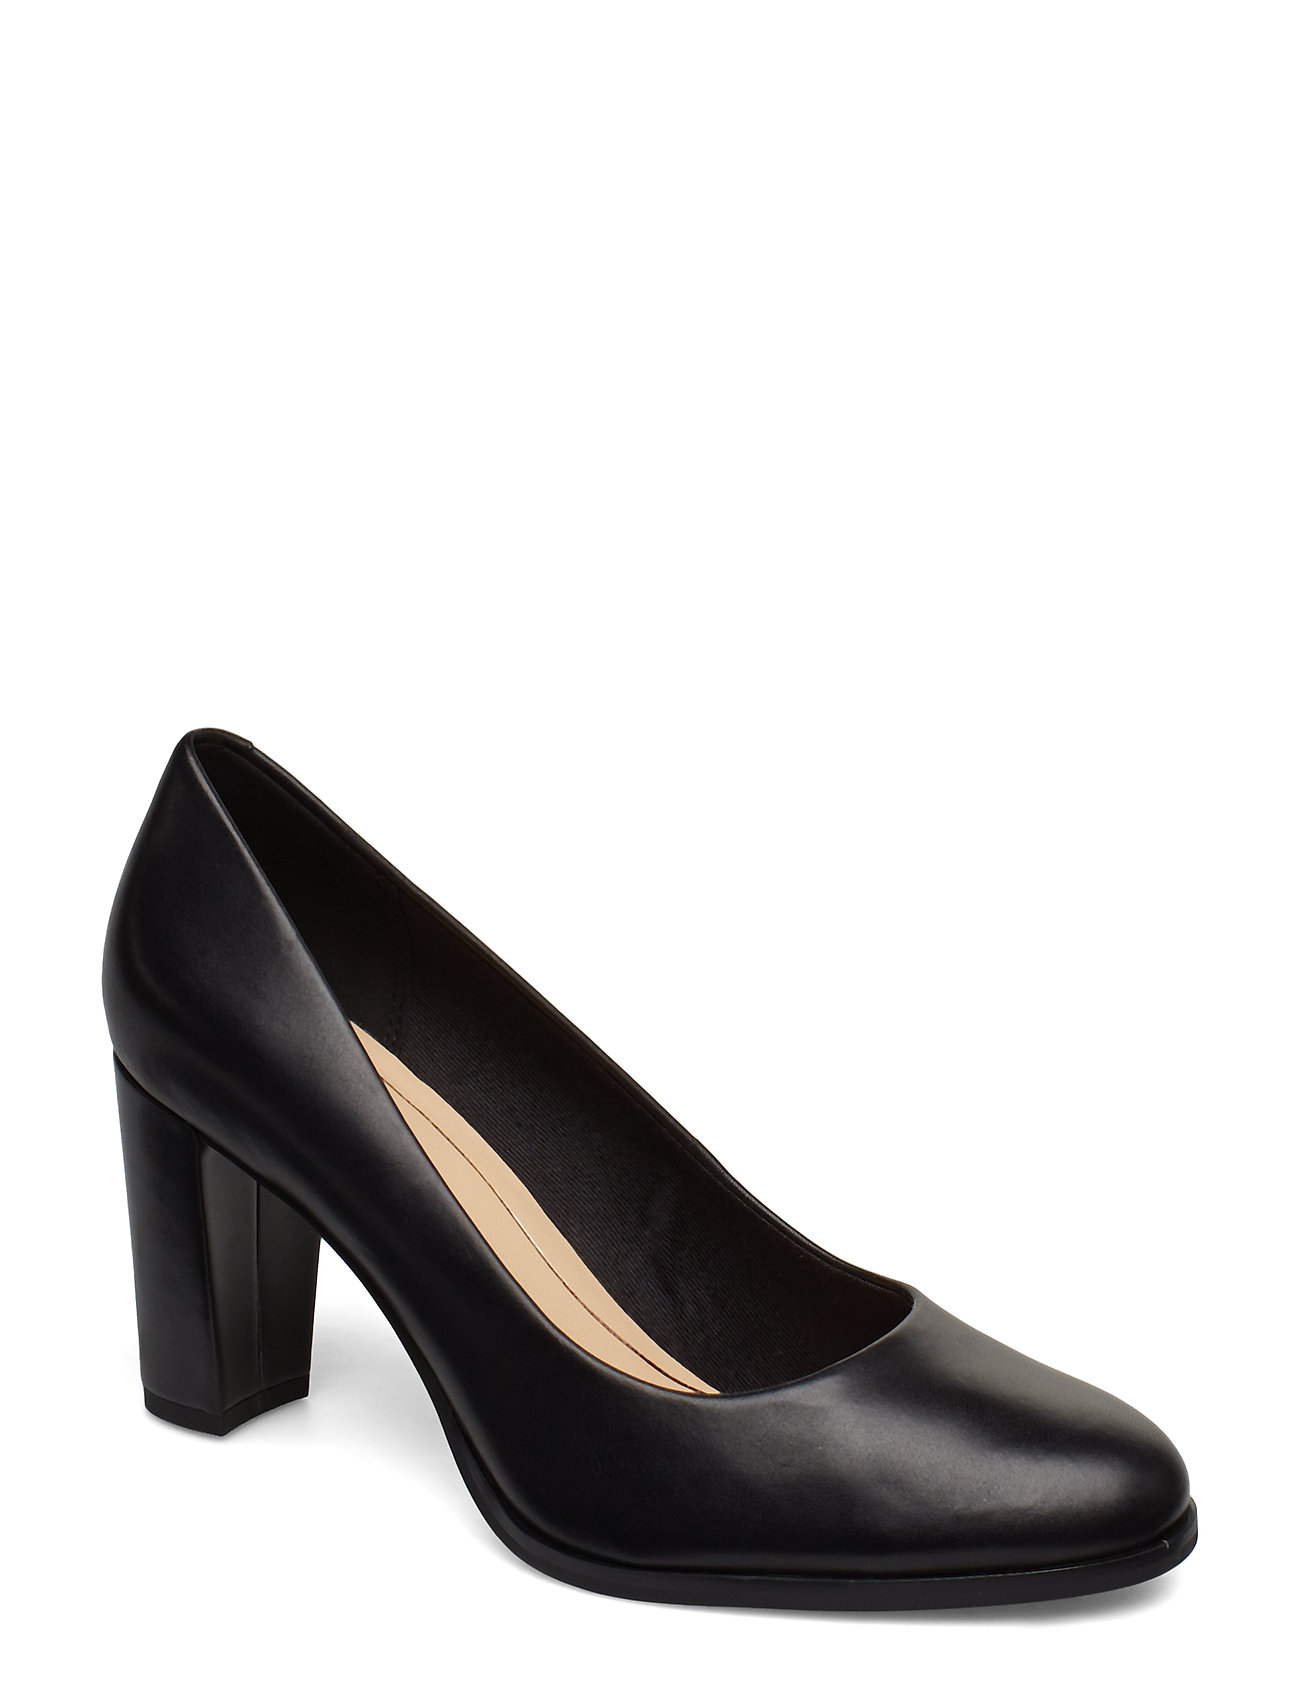 Clarks Kaylin Cara - BLACK LEATHER